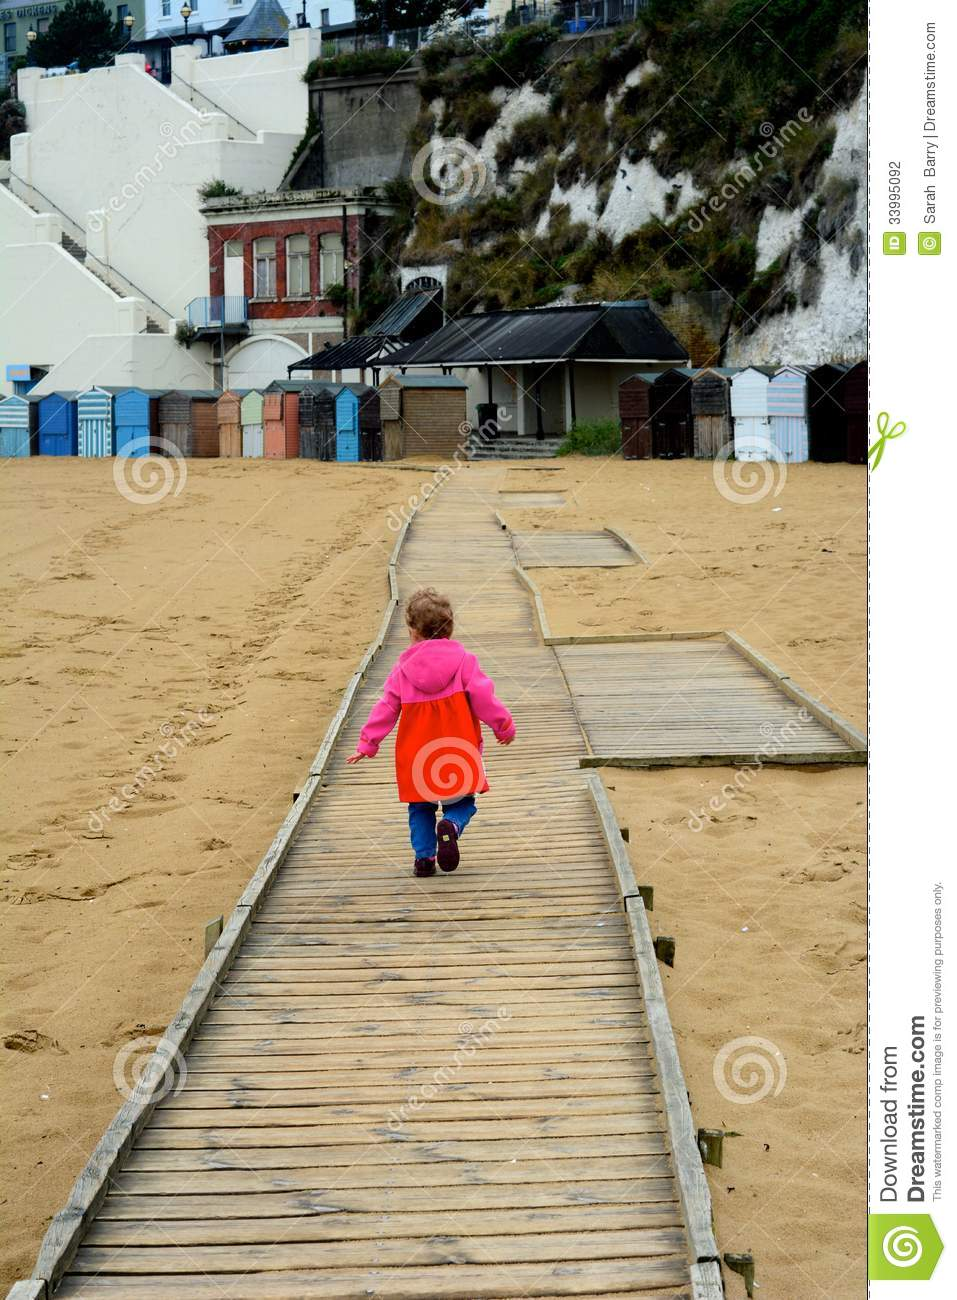 child walking away - photo #27